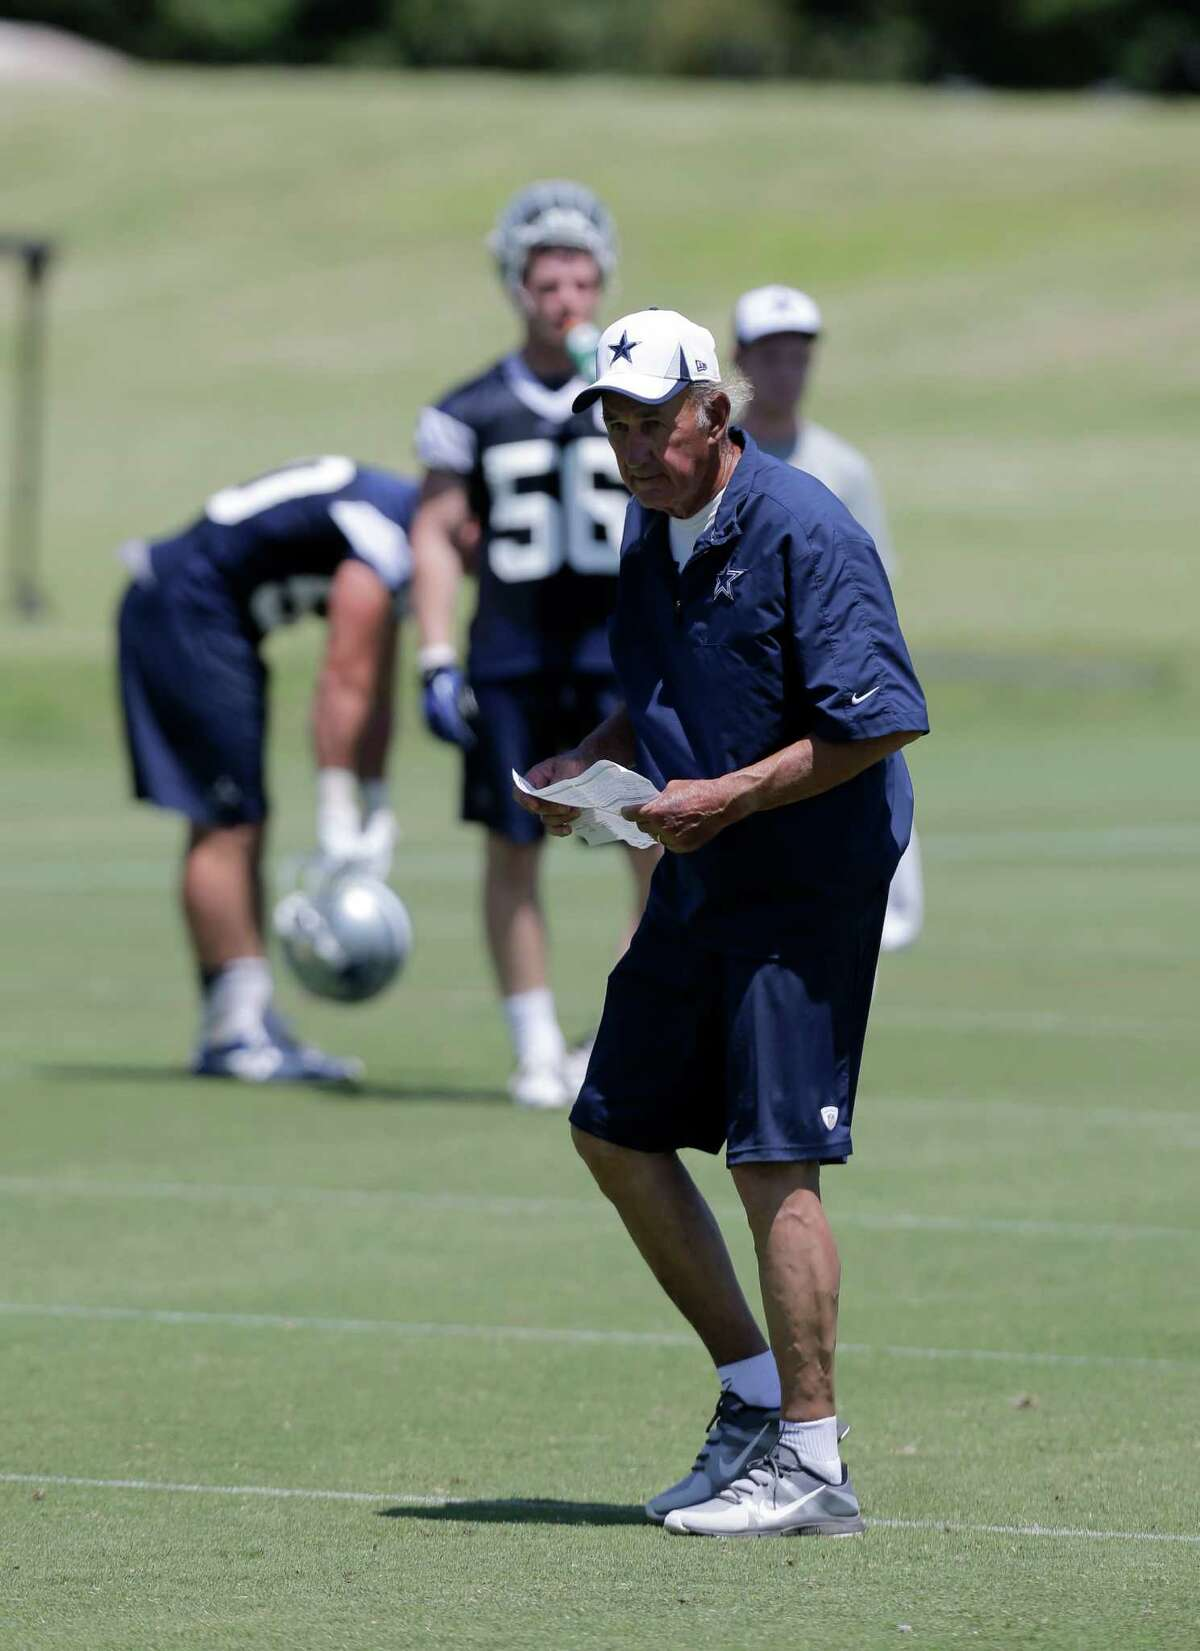 Dallas Cowboys defensive coordinator Monte Kiffin watches as the team runs drills during their NFL football minicamp on Thursday, June 13, 2013, in Irving, Texas. (AP Photo/Tony Gutierrez)